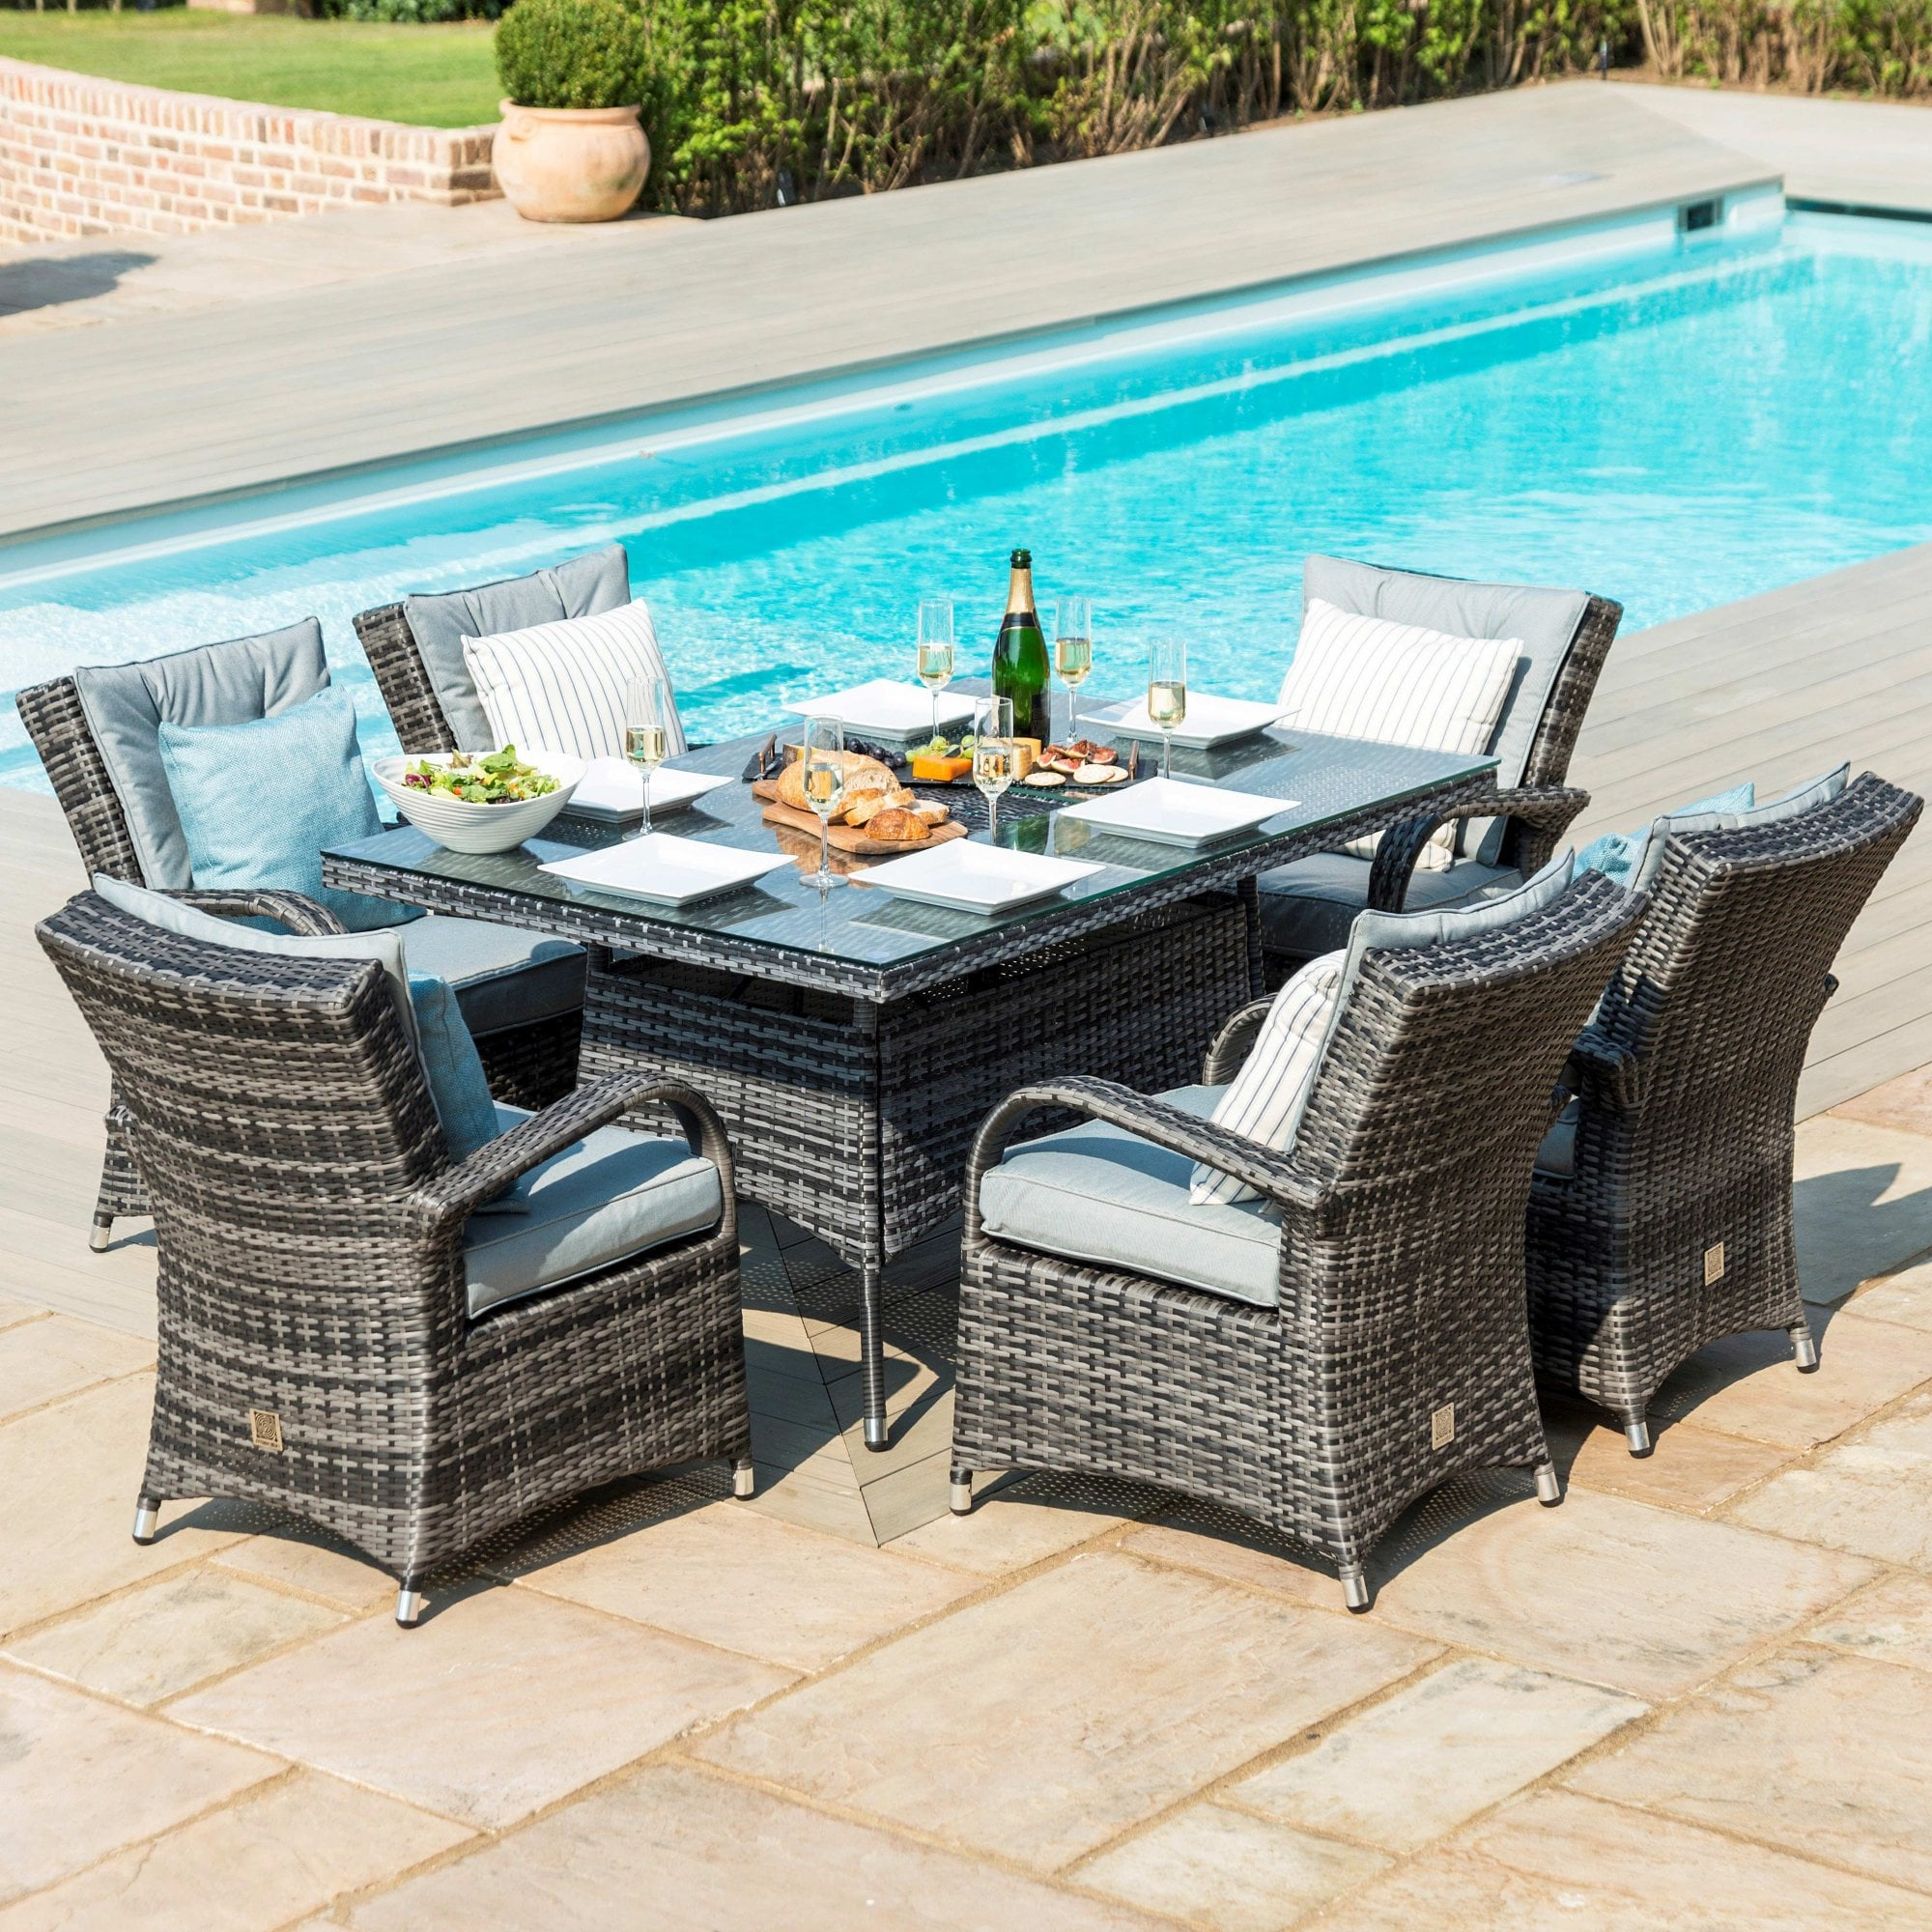 Texas 6 Seat Rectangular Dining Set With Ice Bucket Dining Table Outdoor Living From Breeze Furniture Uk